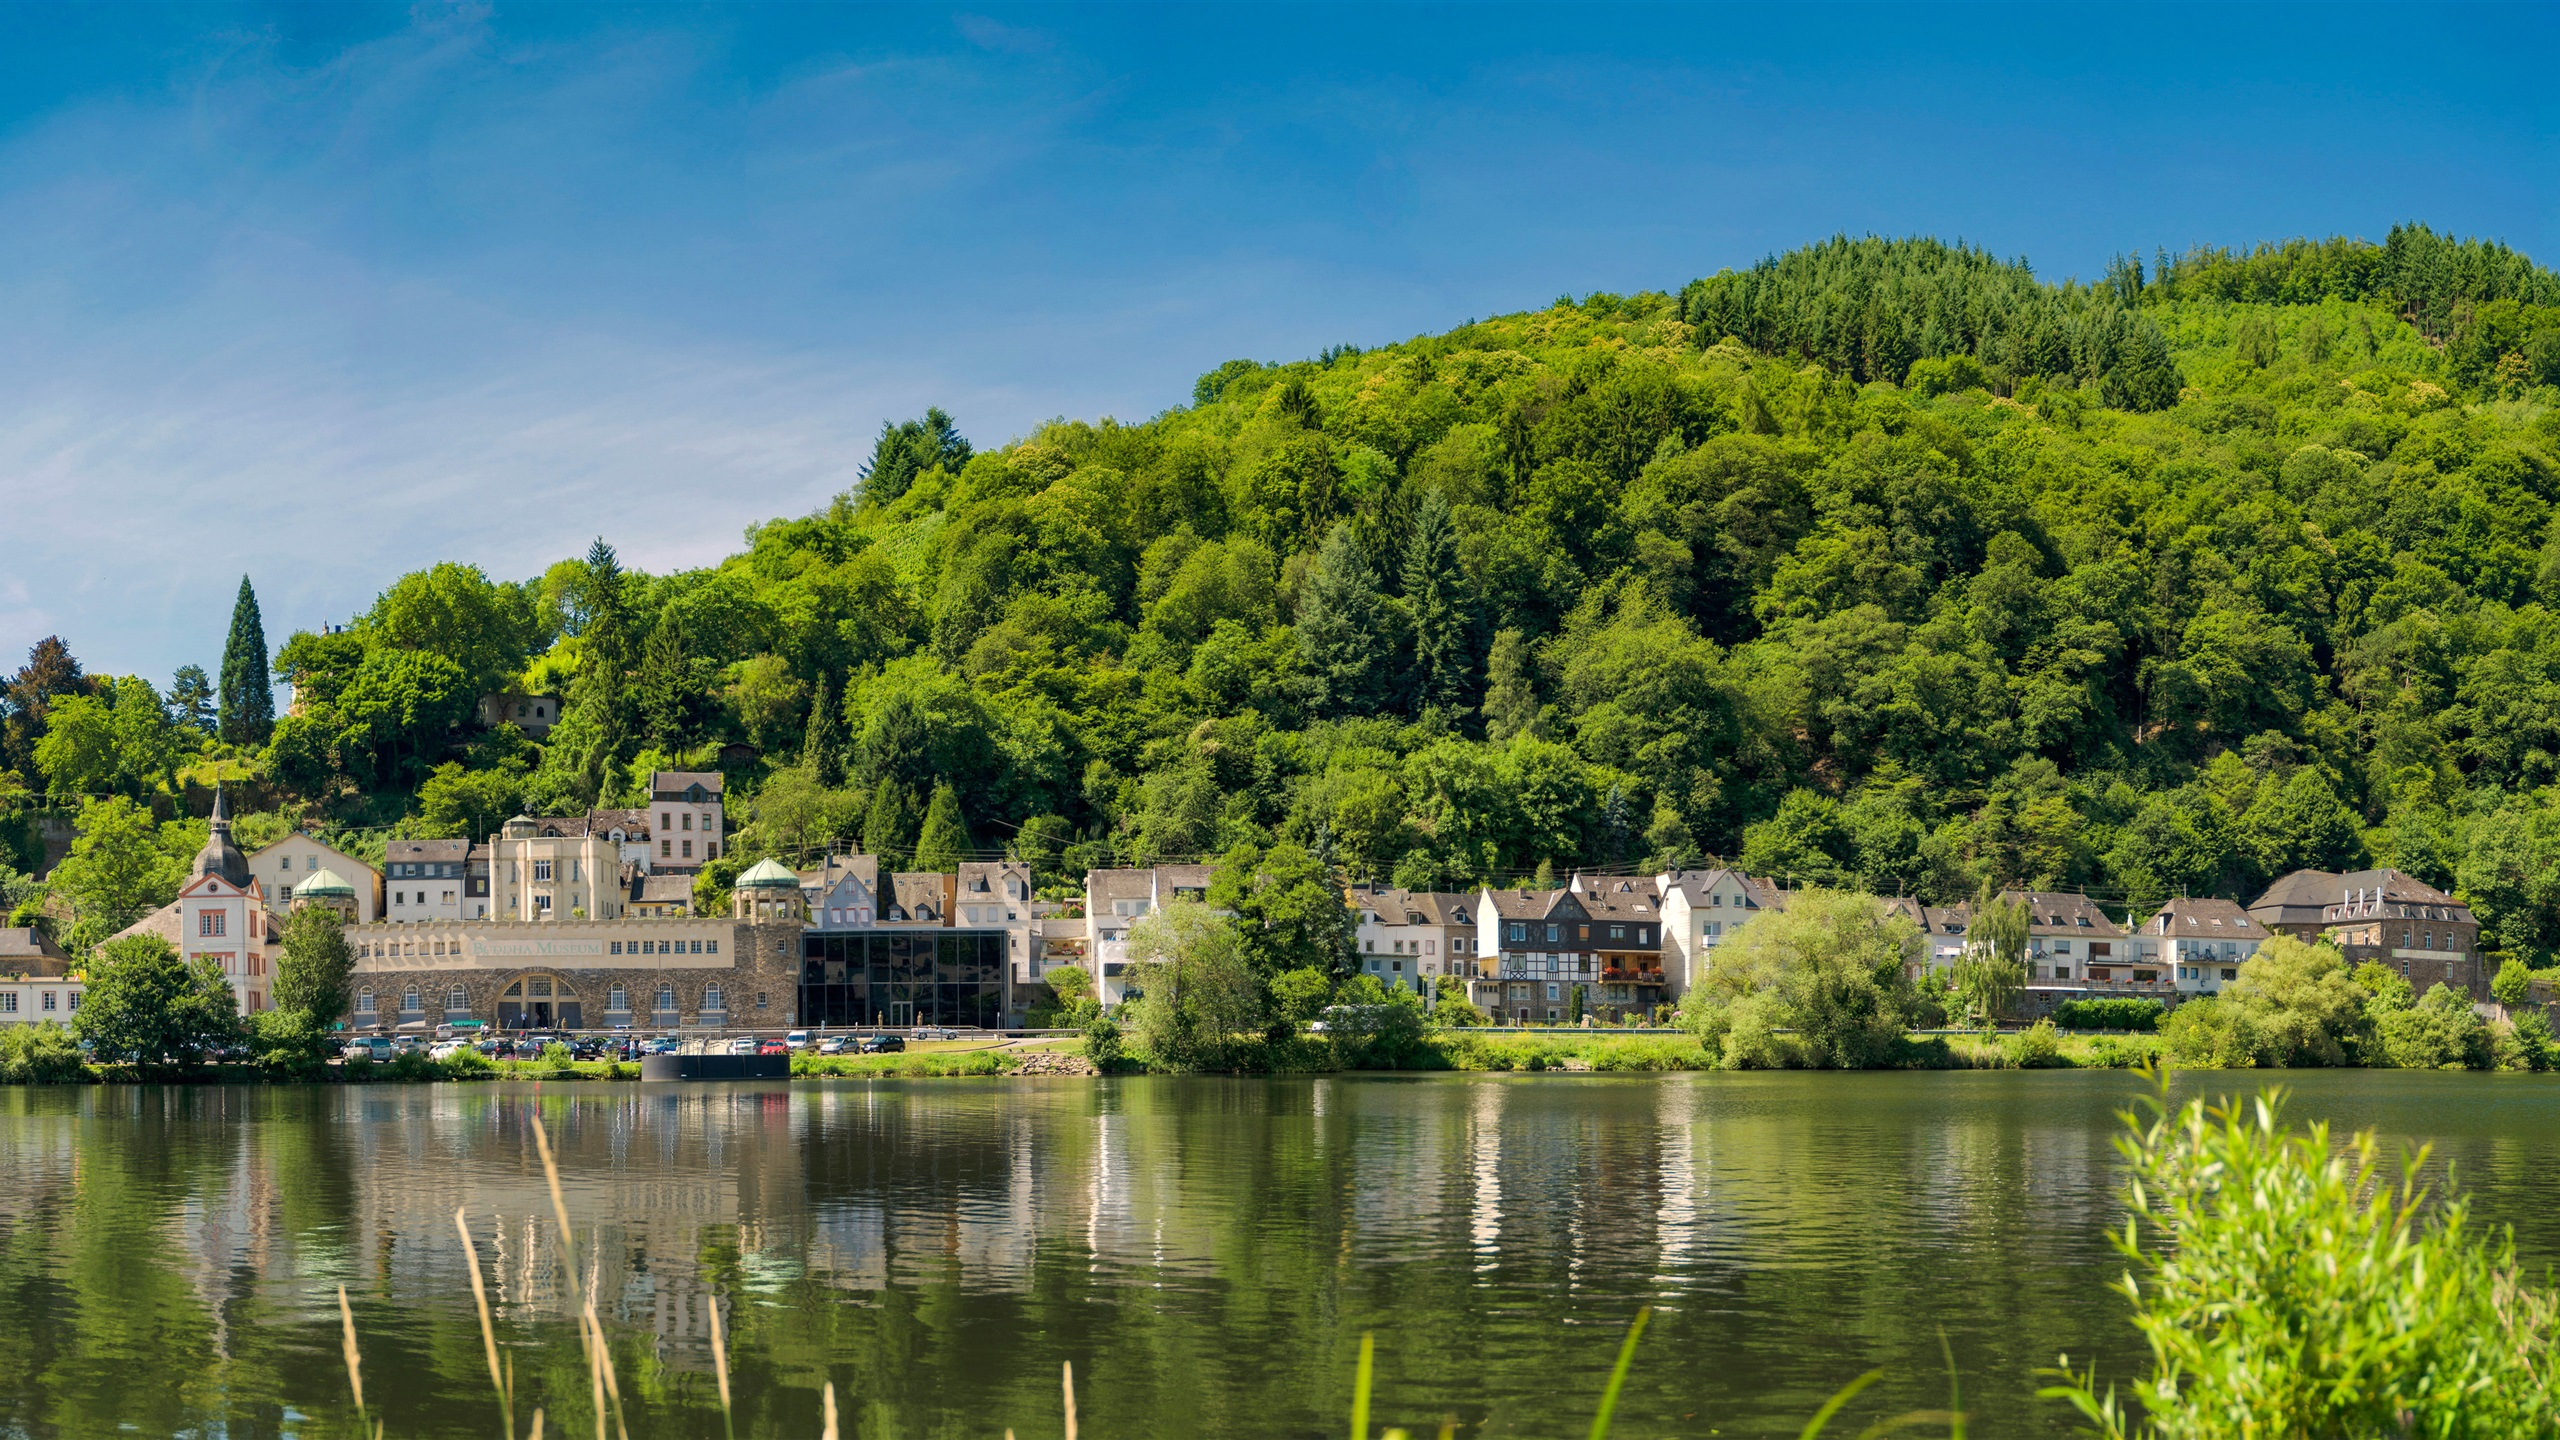 Wallpaper traben trarbach germany river houses trees for Wallpaper with houses on it